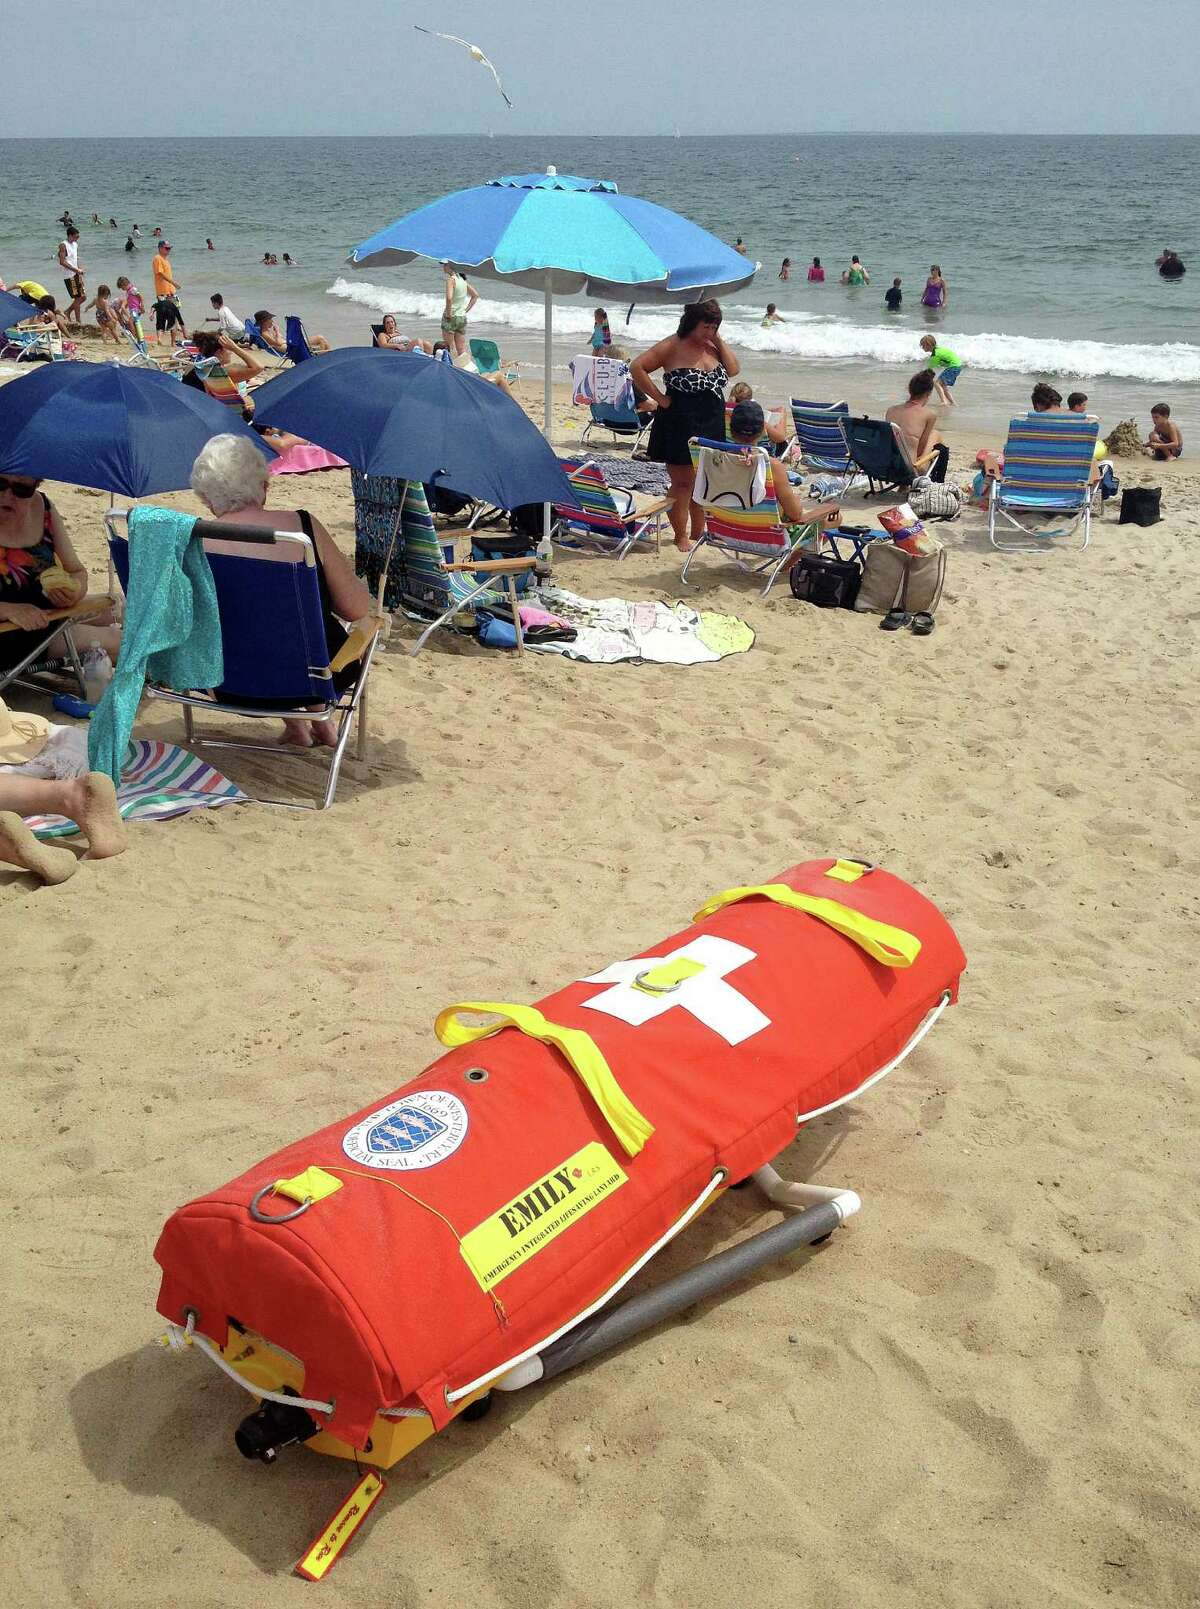 In this Wednesday, Aug, 8, 2012 photo, EMILY, (Emergency Integrated Lifesaving Lanyard) a remote-controlled battery powered lifesaving device, sits on Old Town Beach in Westerly, R.I. EMILY is a small watercraft fitted with a flotation device and can go up to 22 mph, allowing it to get to people more quickly, and in some cases more safely, than any human.